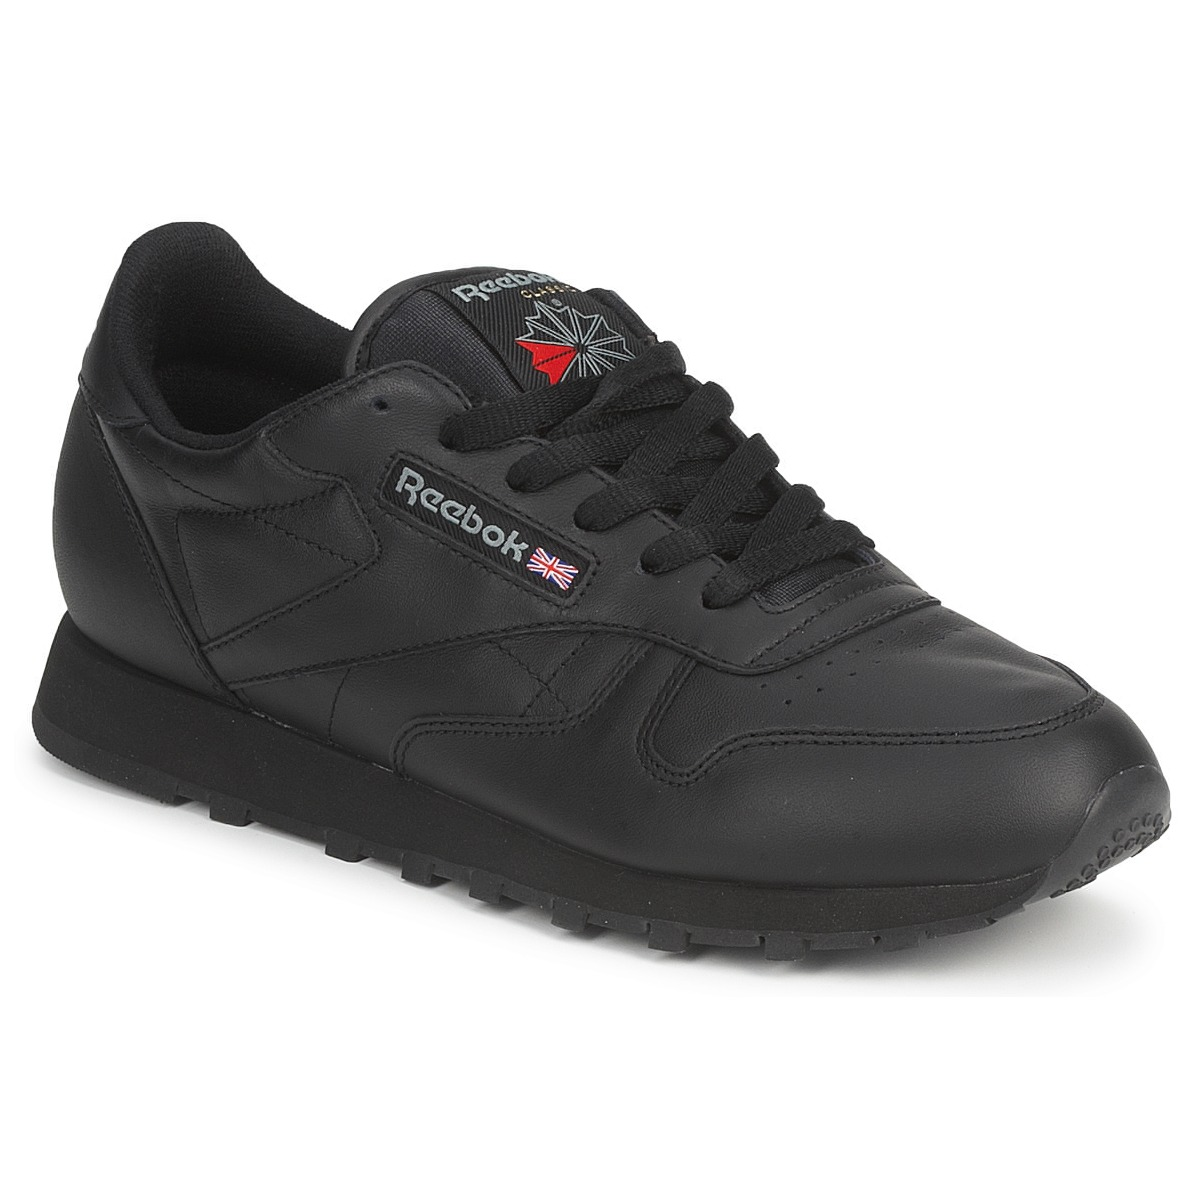 reebok classic classic leather noir chaussures baskets basses femme 69 99